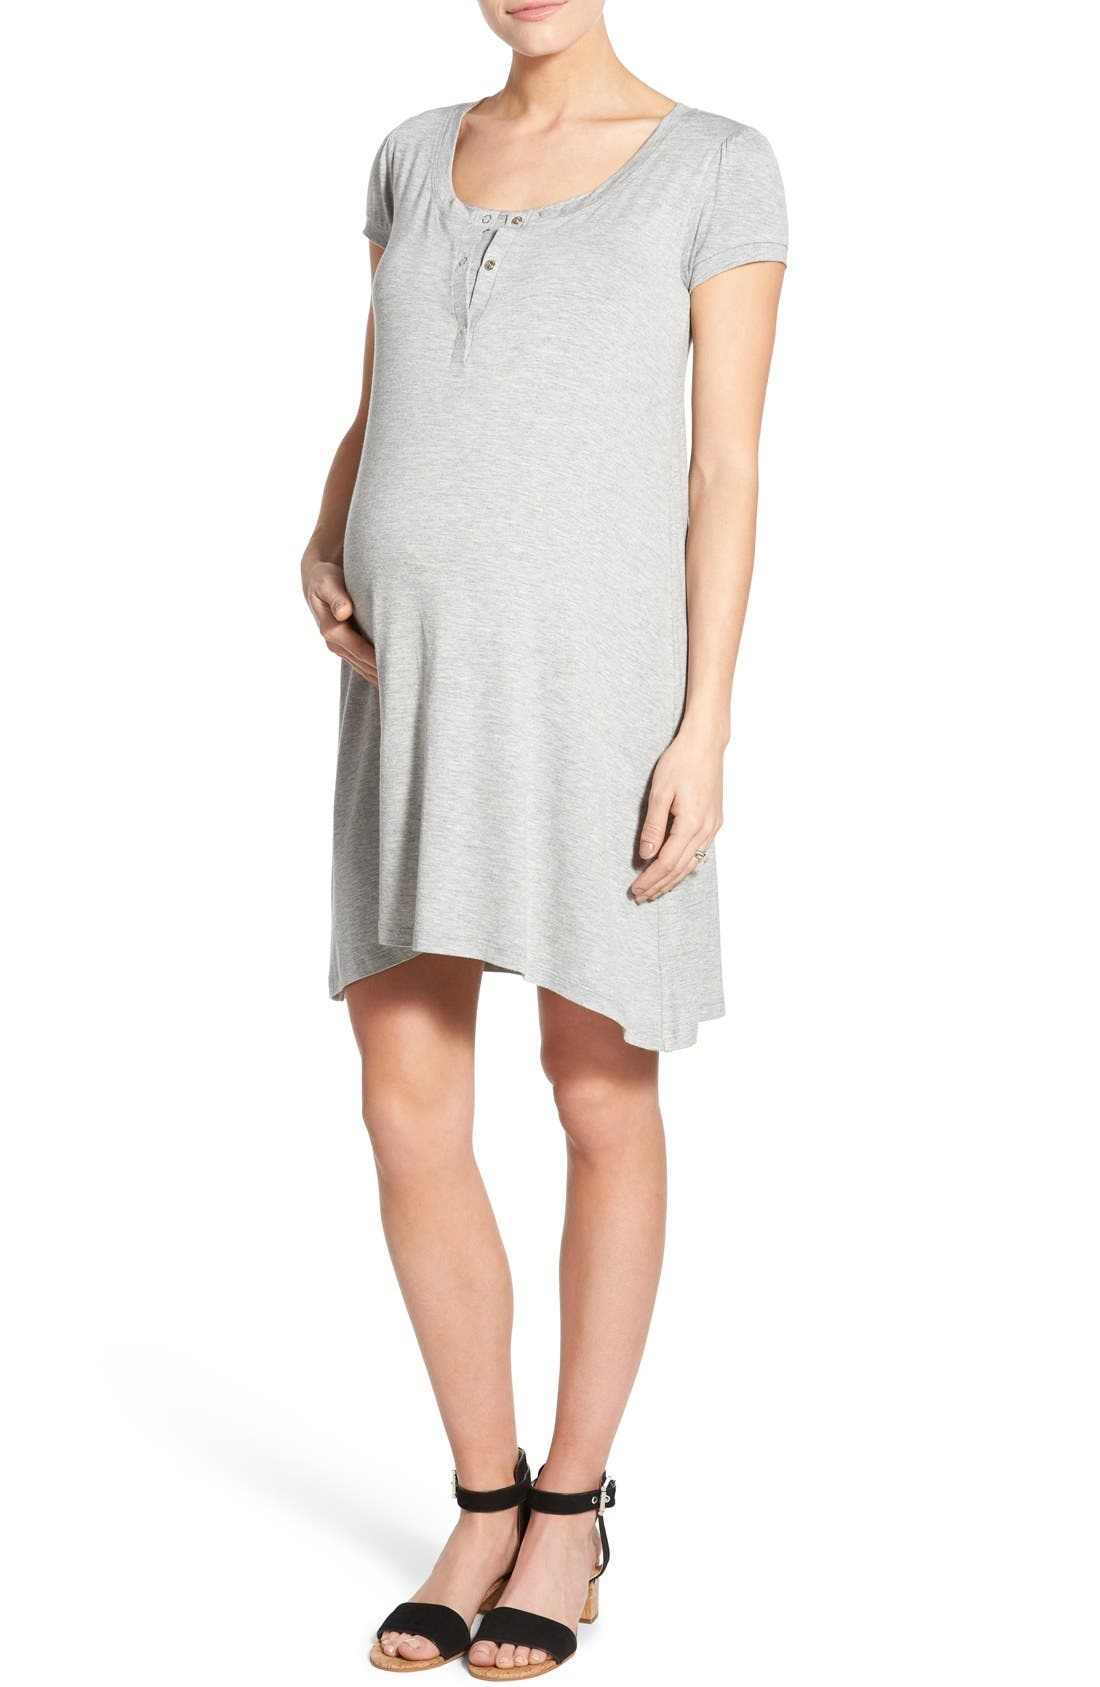 LAB40 'Poppy' Maternity/Nursing Swing Dress